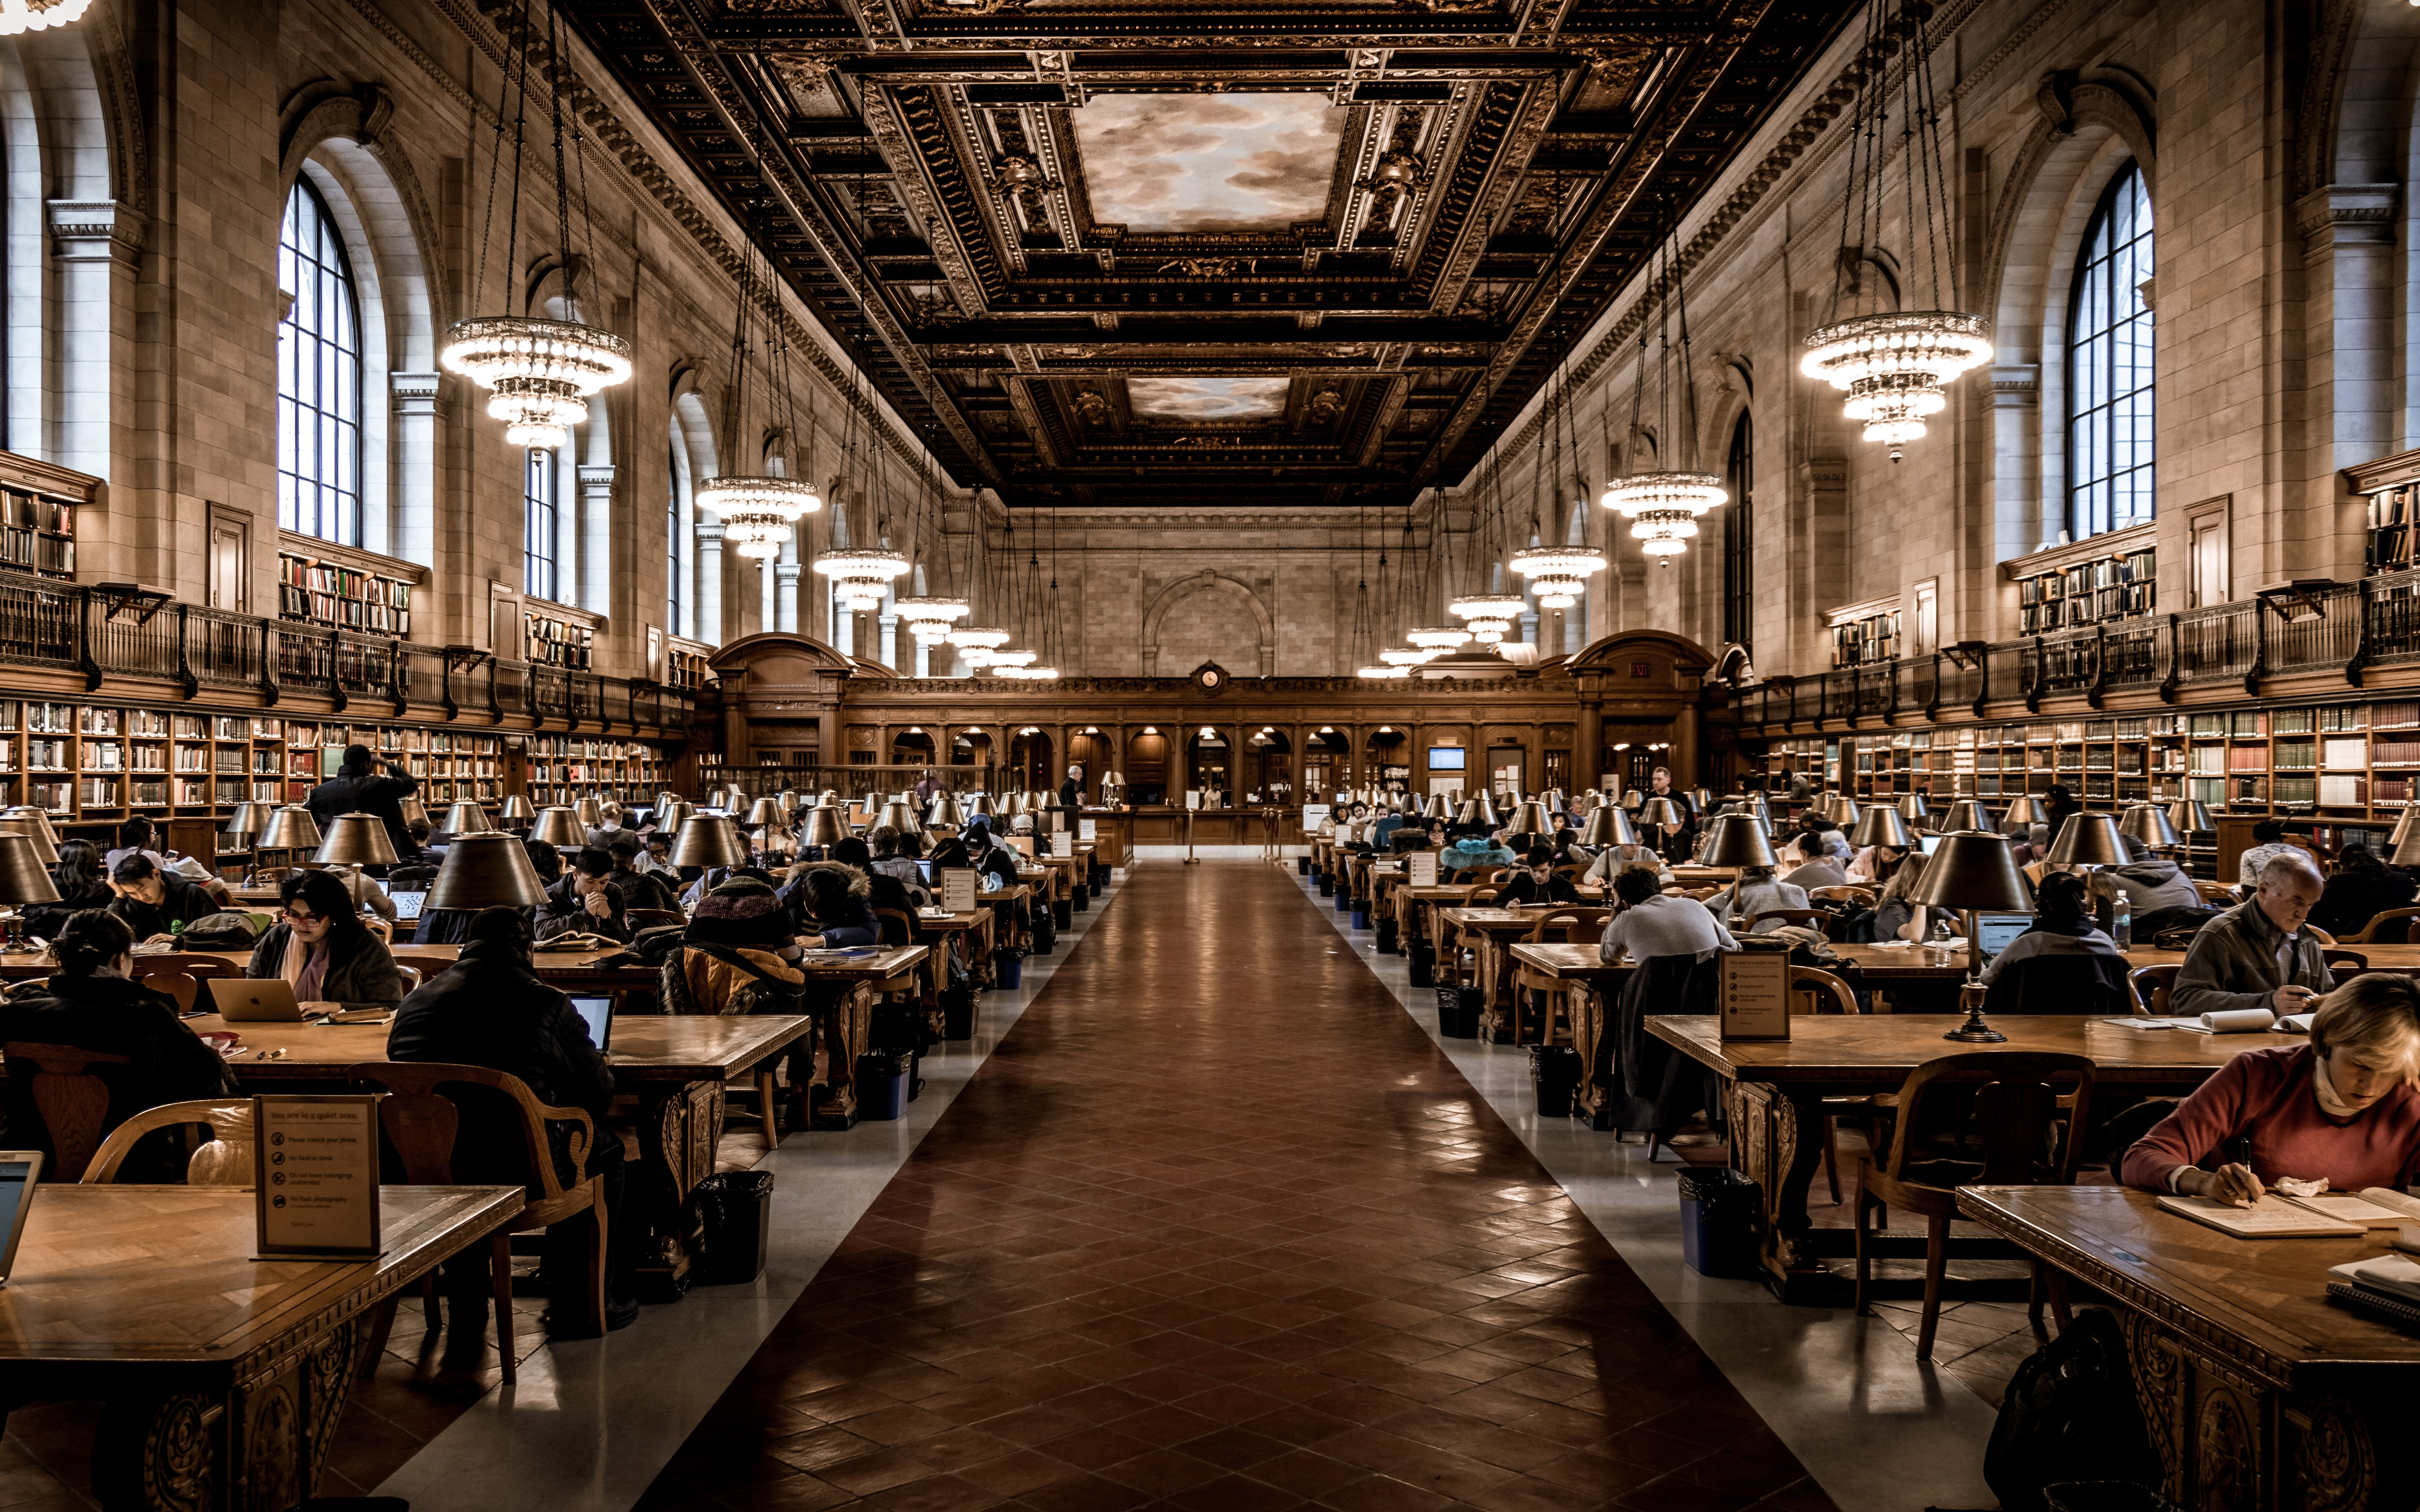 Many people working and reading inside of the New York Public Library.